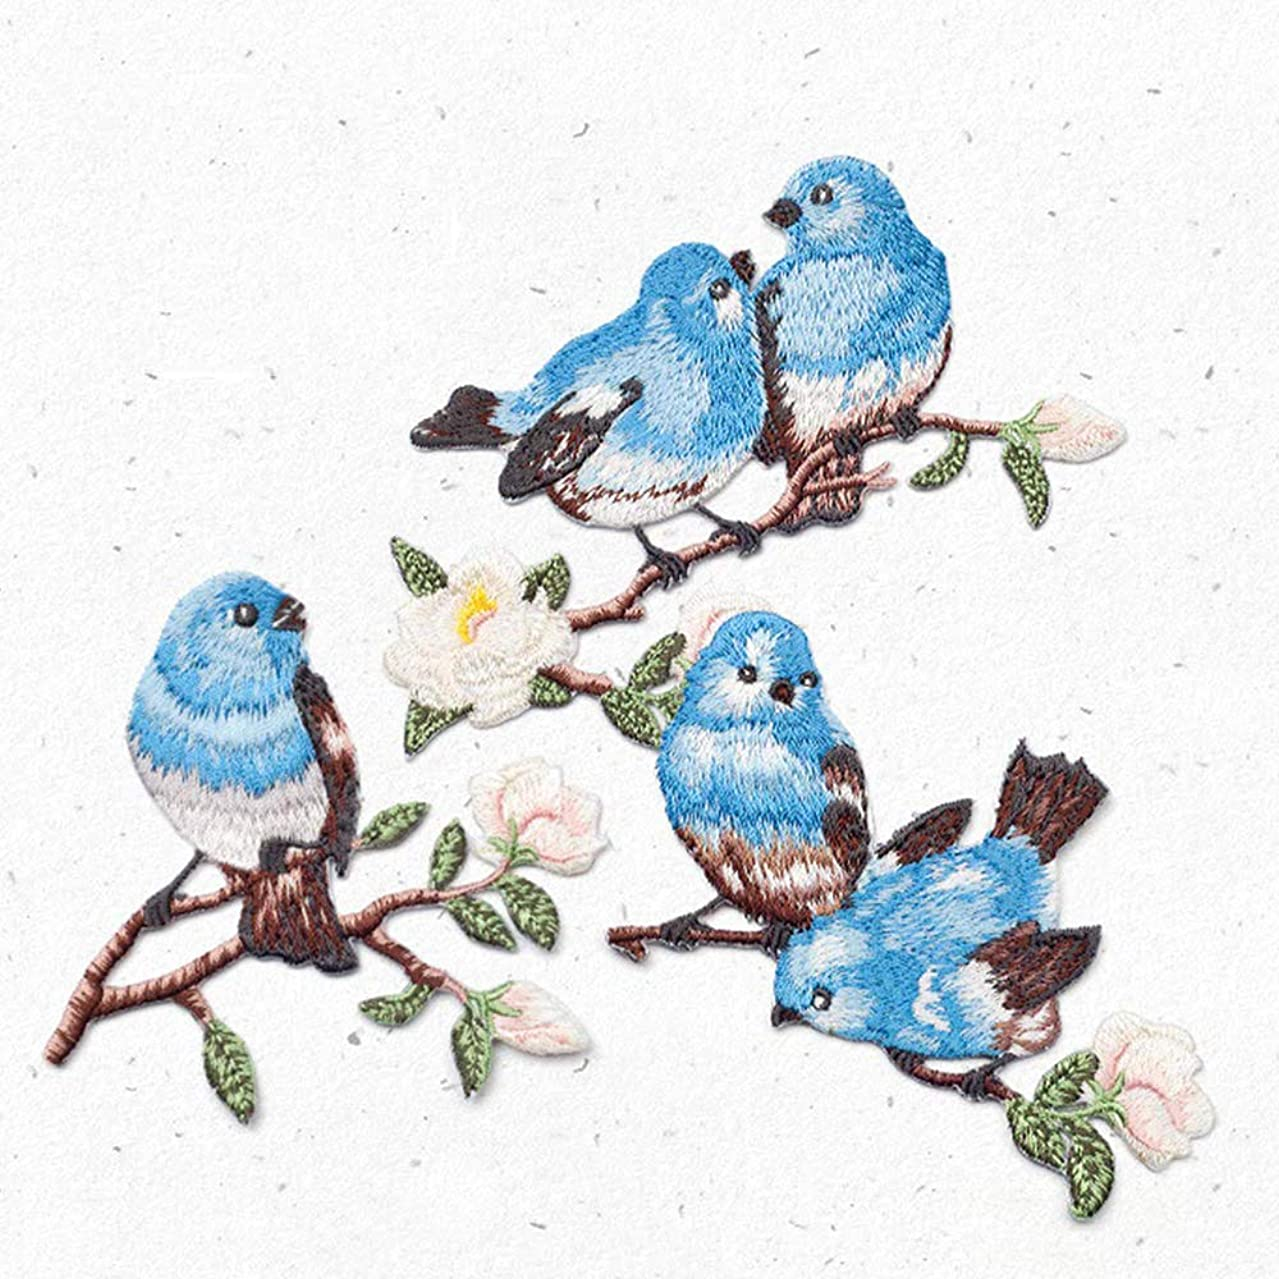 ZOOPOLR 3 Pcs Cute Birds Delicate Embroidered Patches, Embroidery Patches, Iron On Patches, Sew On Applique Patch,Cool Patches for Men, Women, Boys, Girls, Kids